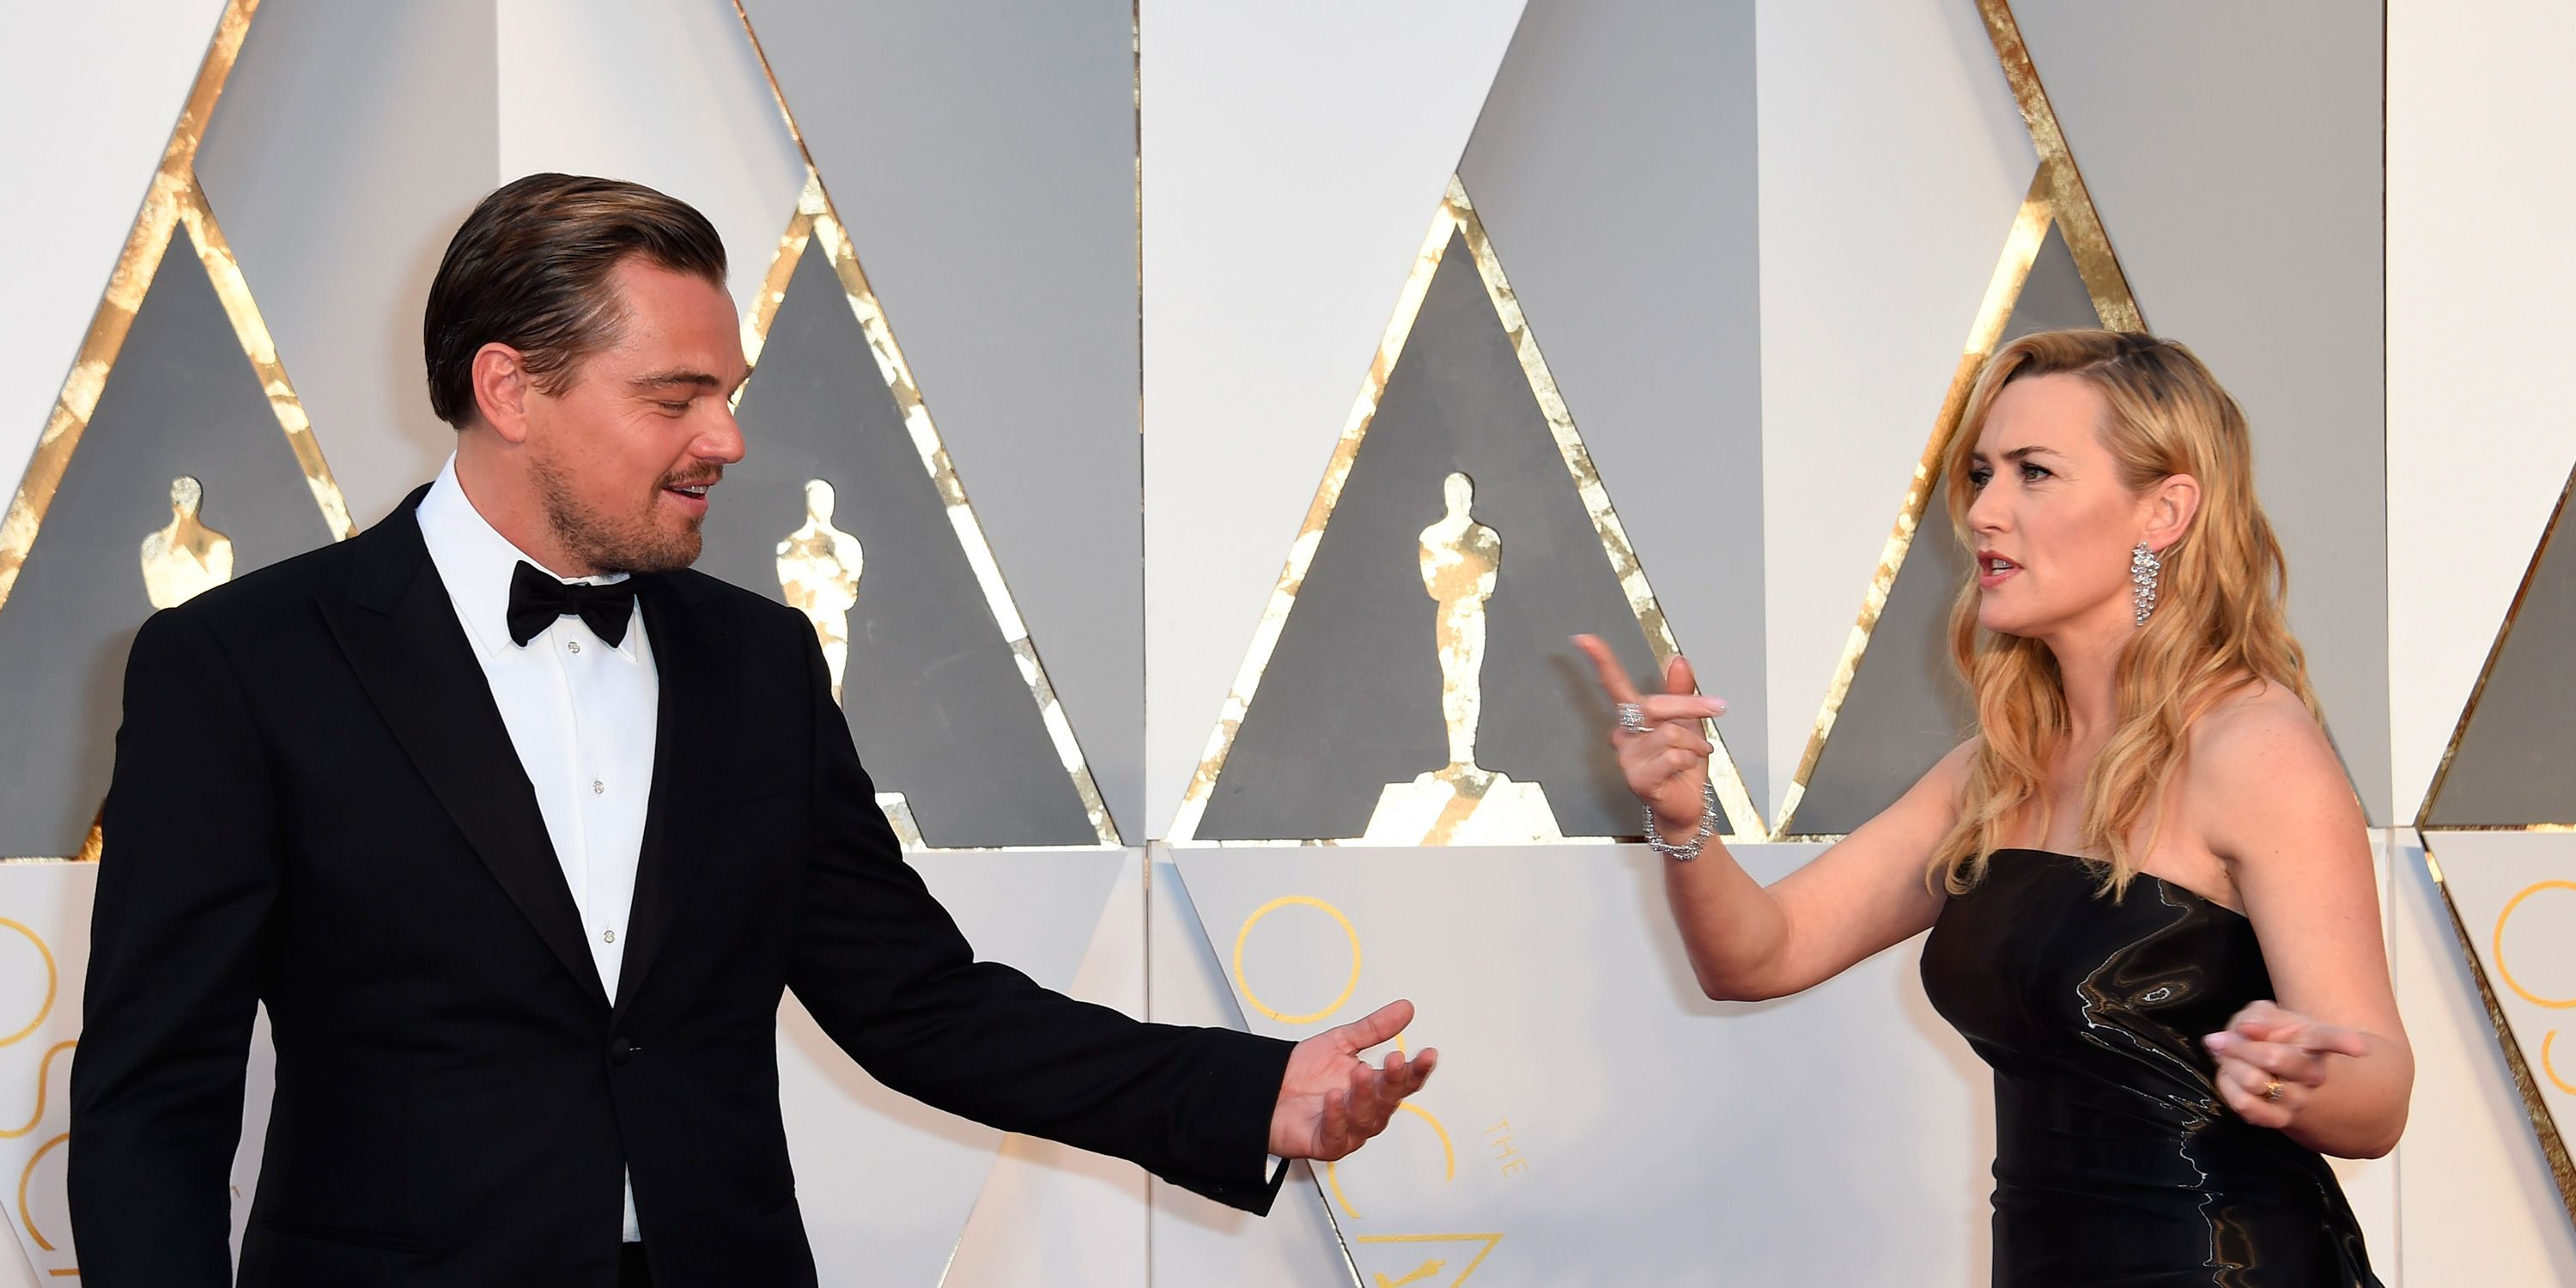 Kate Winslet and Leonardo DiCaprio at the Oscars 2016